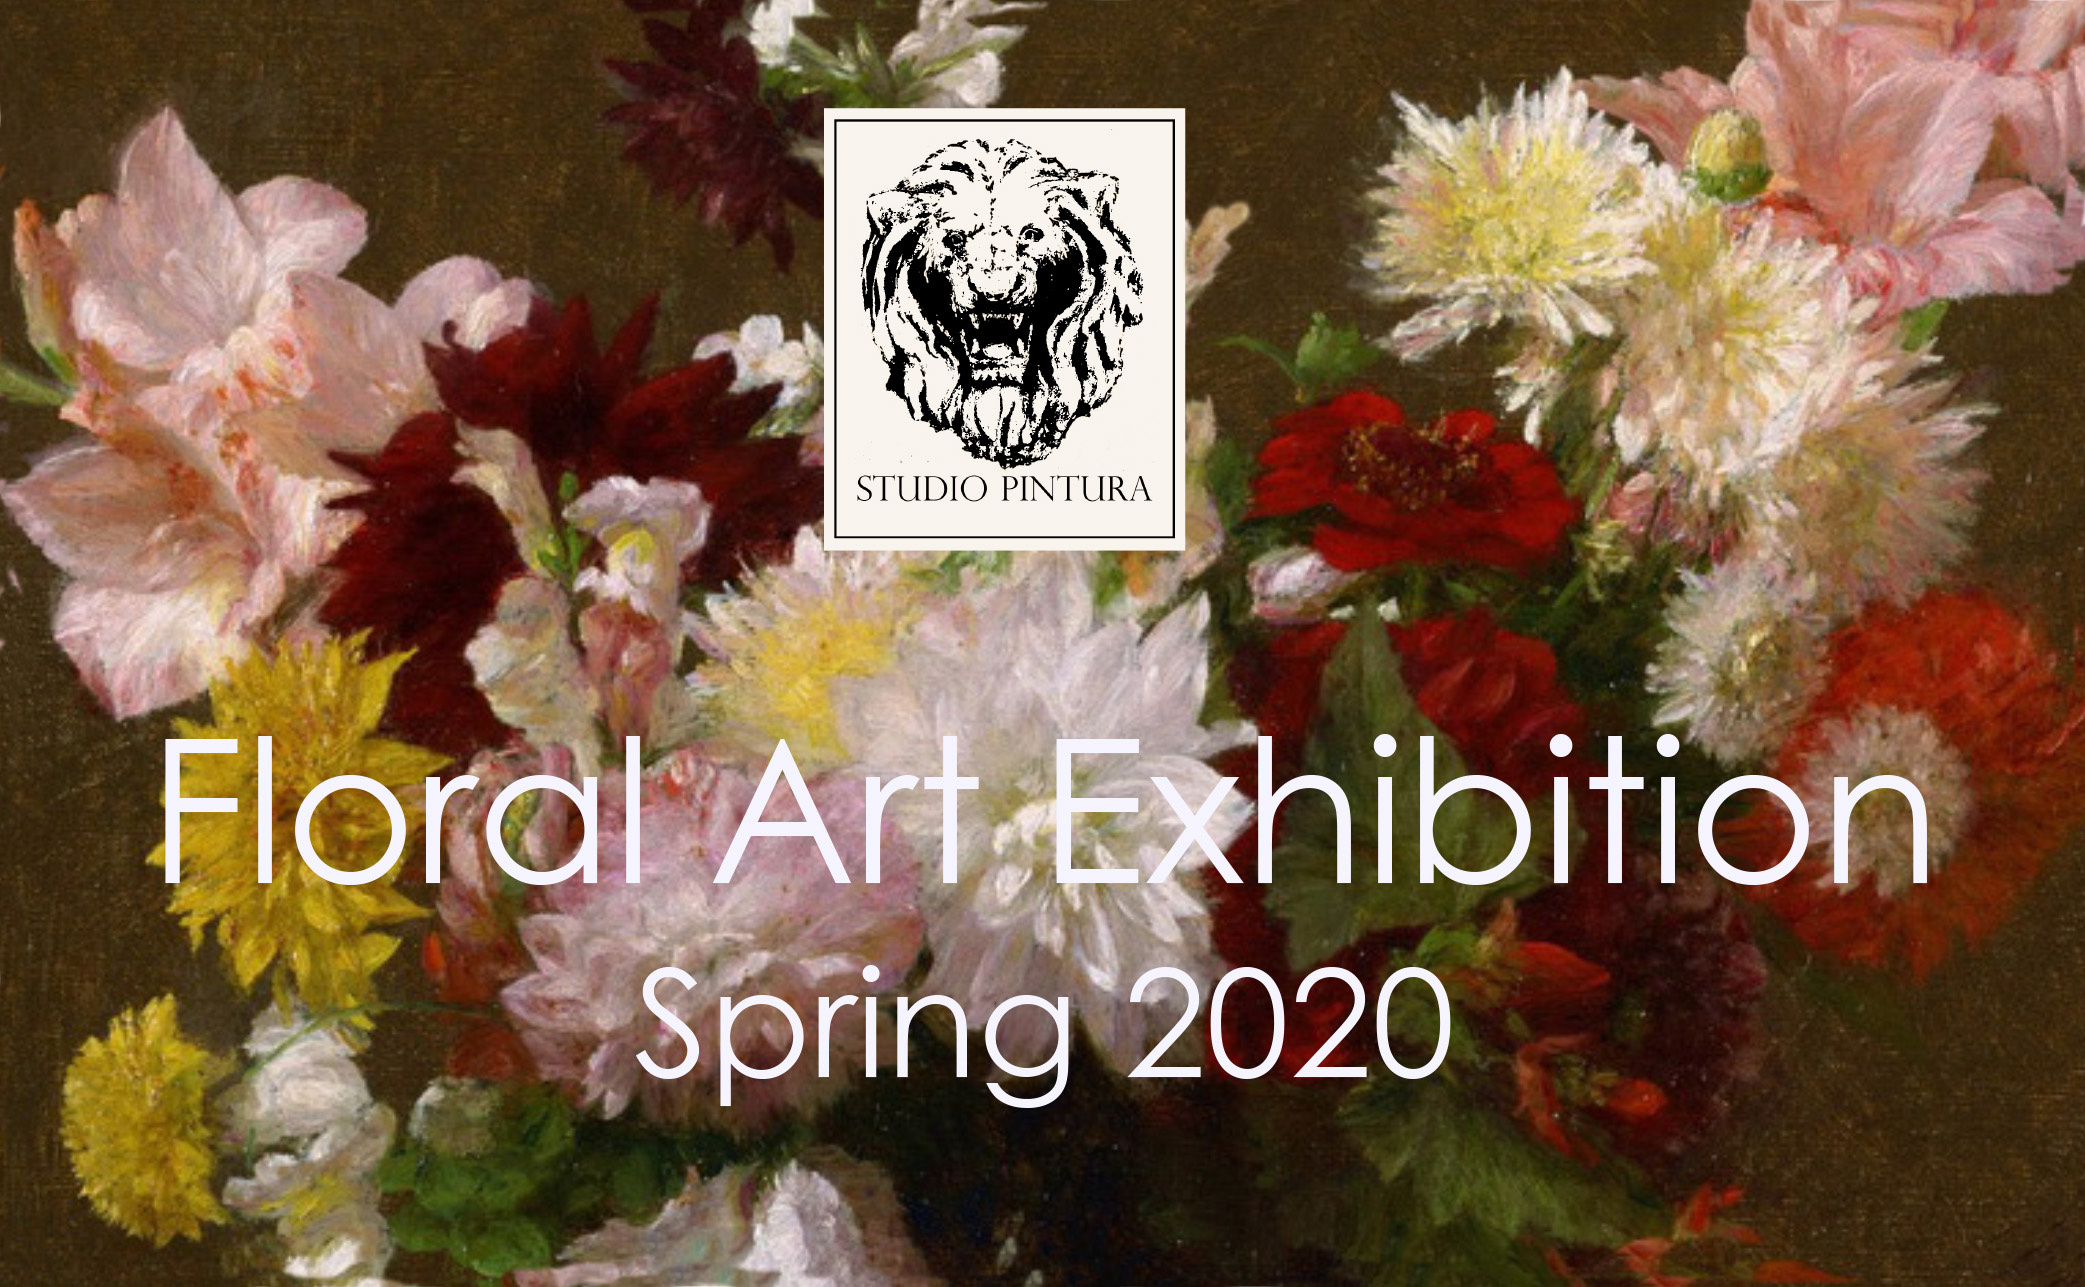 Studio Pintura Floral Exhibition 2020